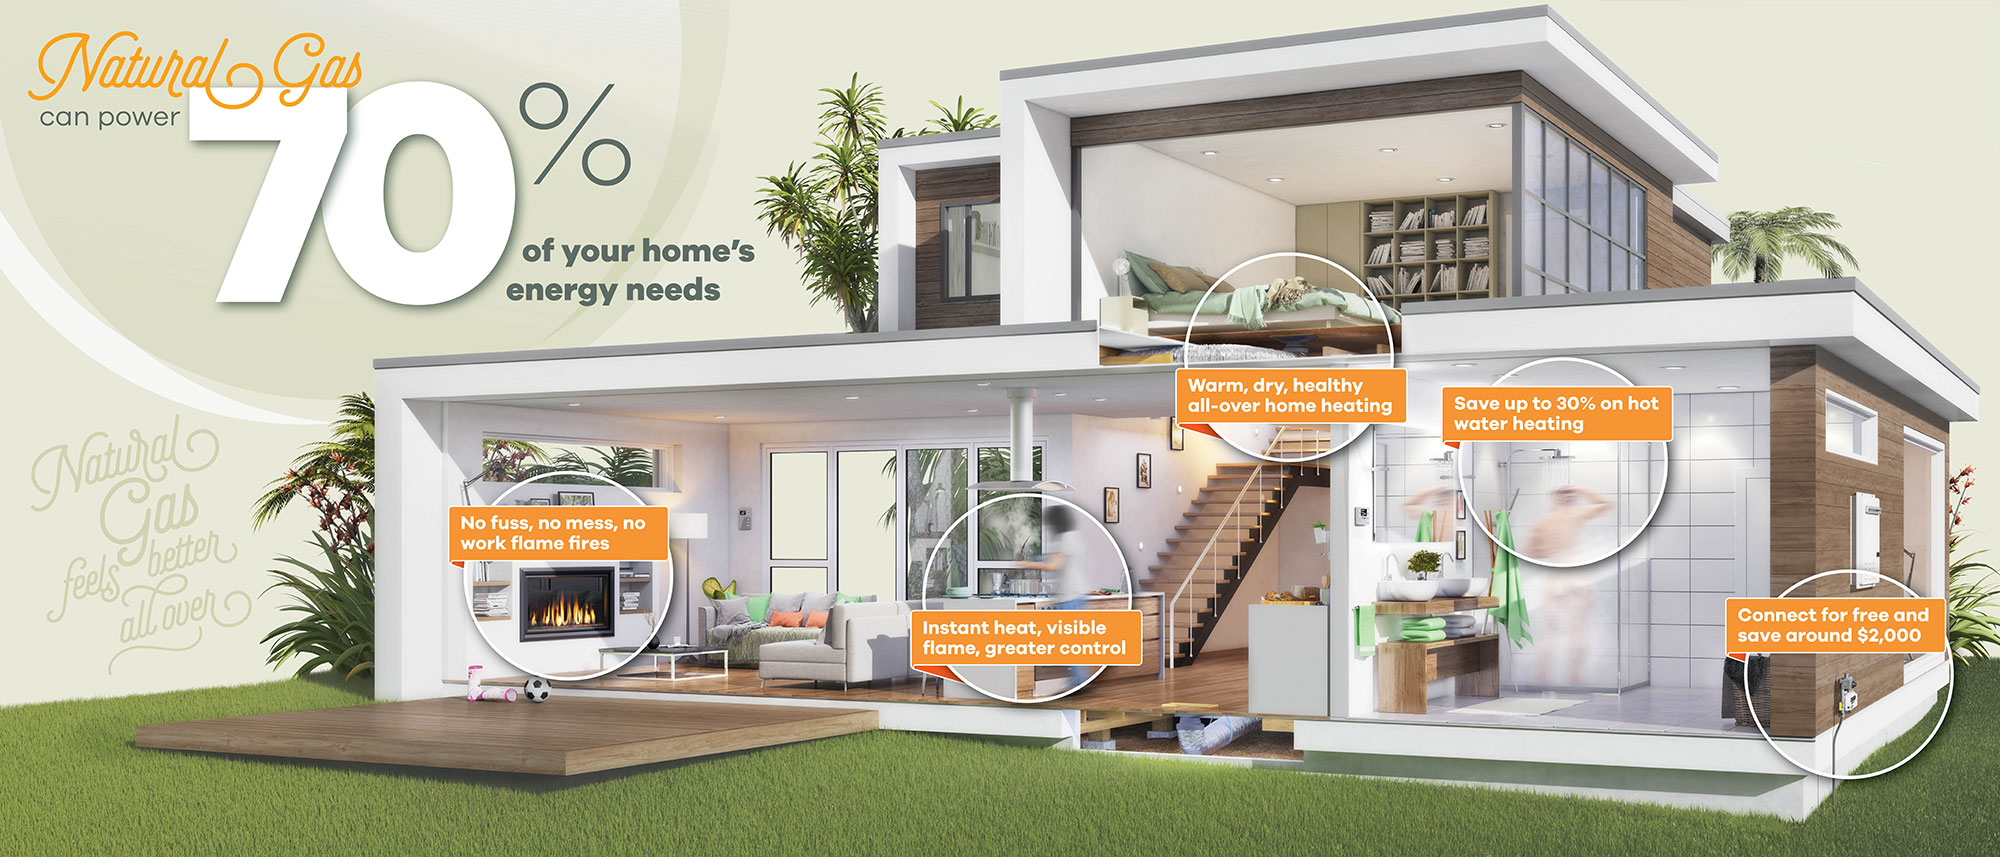 Natural gas can power 70% of your home's energy needs